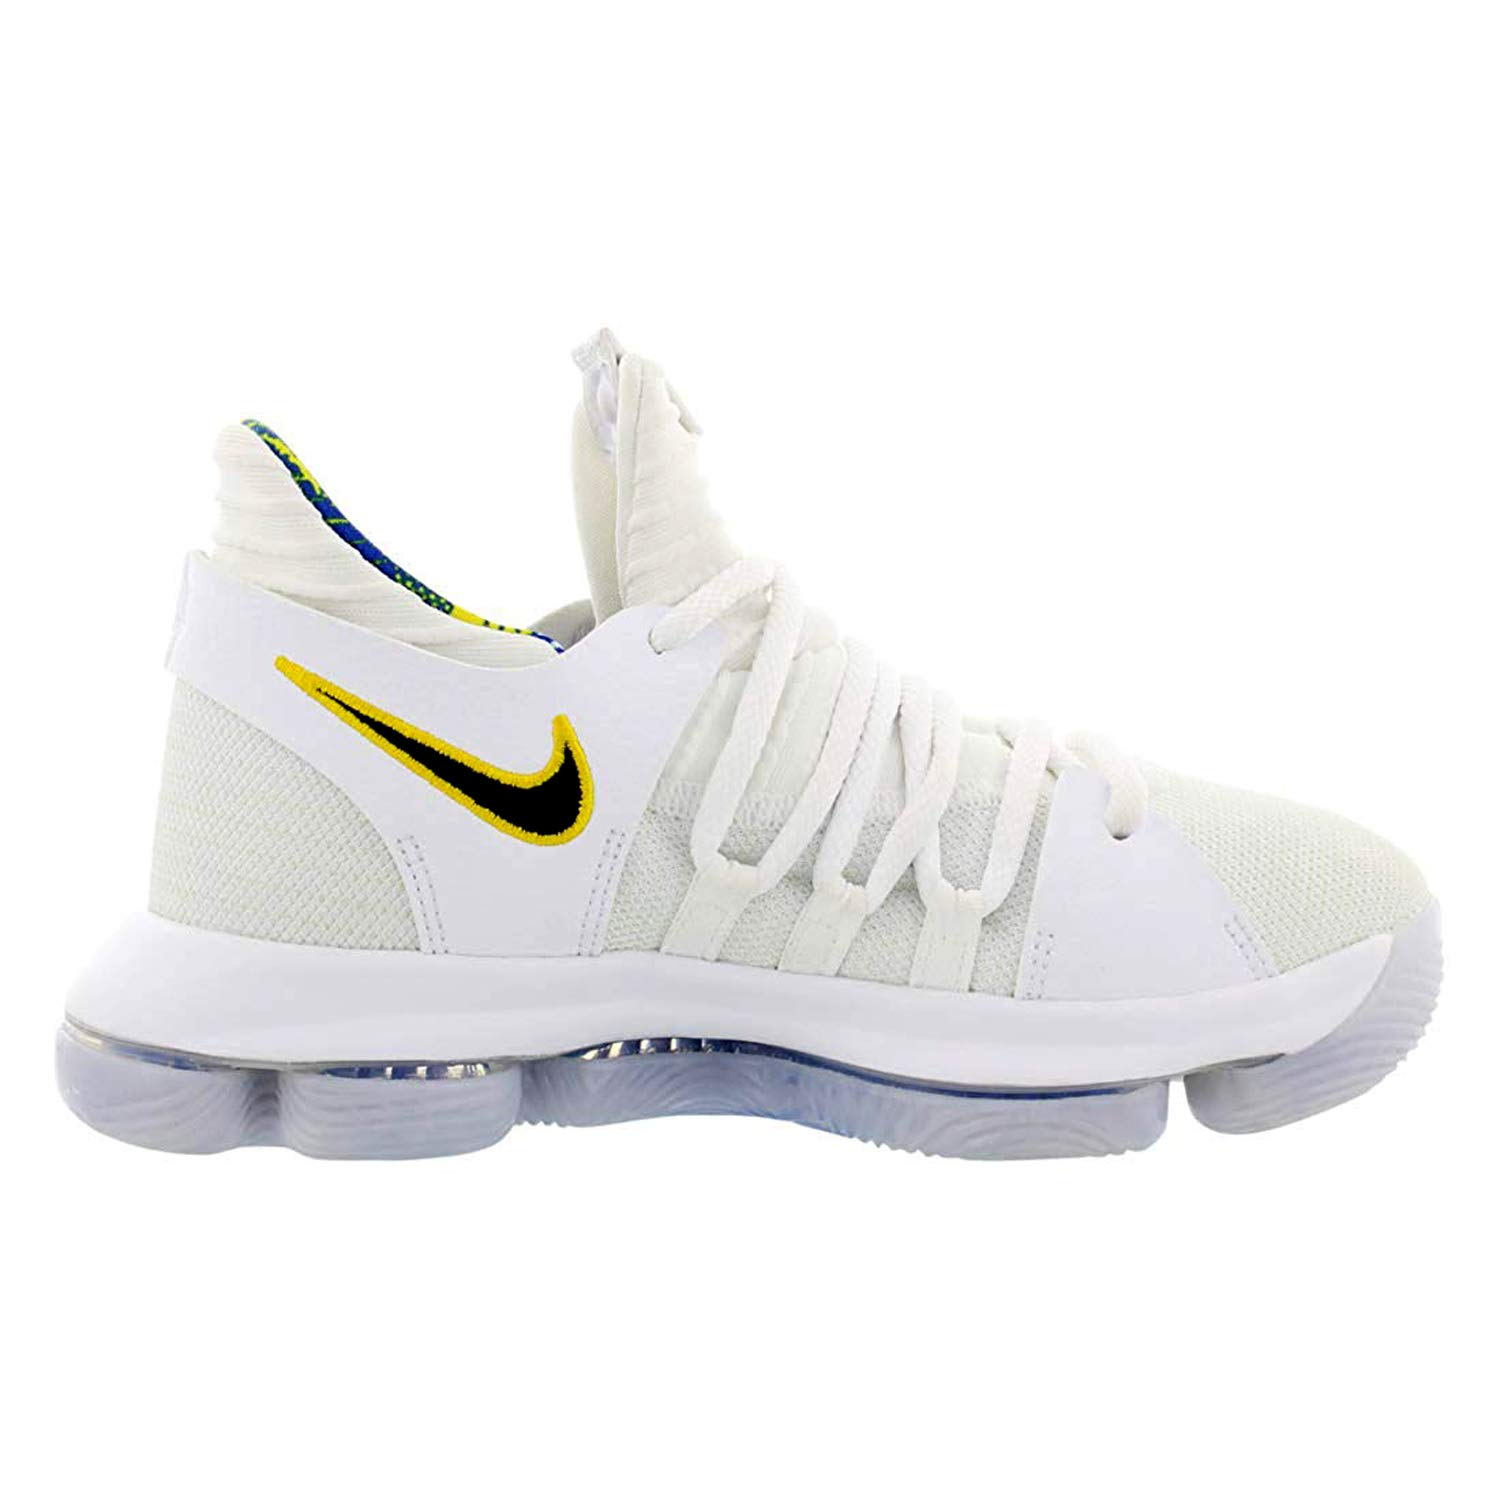 brand new 5d8eb b7db2 Nike Zoom KD10 LMTD NBA Grade School Basketball Shoes (3.5 M US Big Kid,  White/Game Royal/University Gold)